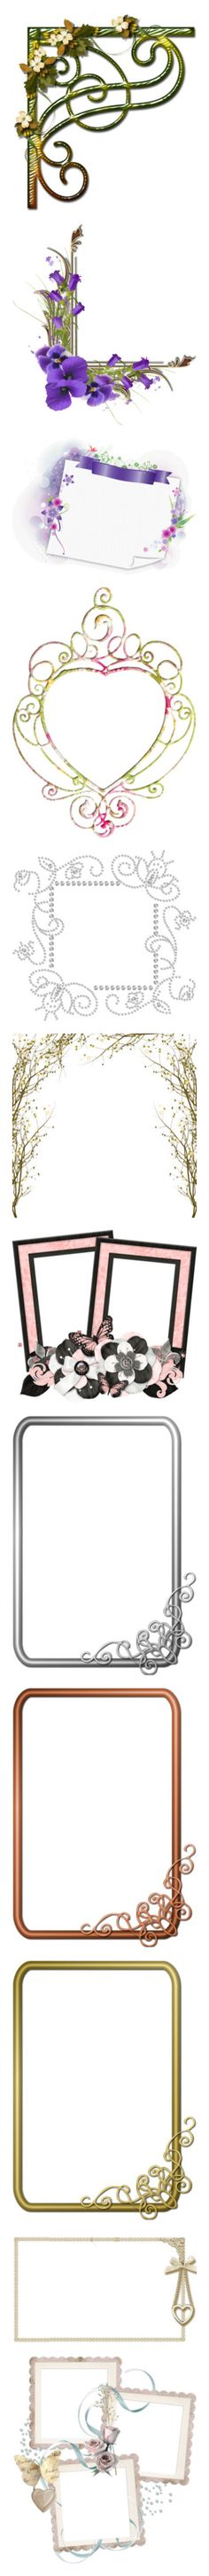 """""""Frames"""" by lokisbooksnmore ❤ liked on Polyvore featuring corners, frames, borders, backgrounds, art, filler, picture frame, flowers, fillers and hearts"""